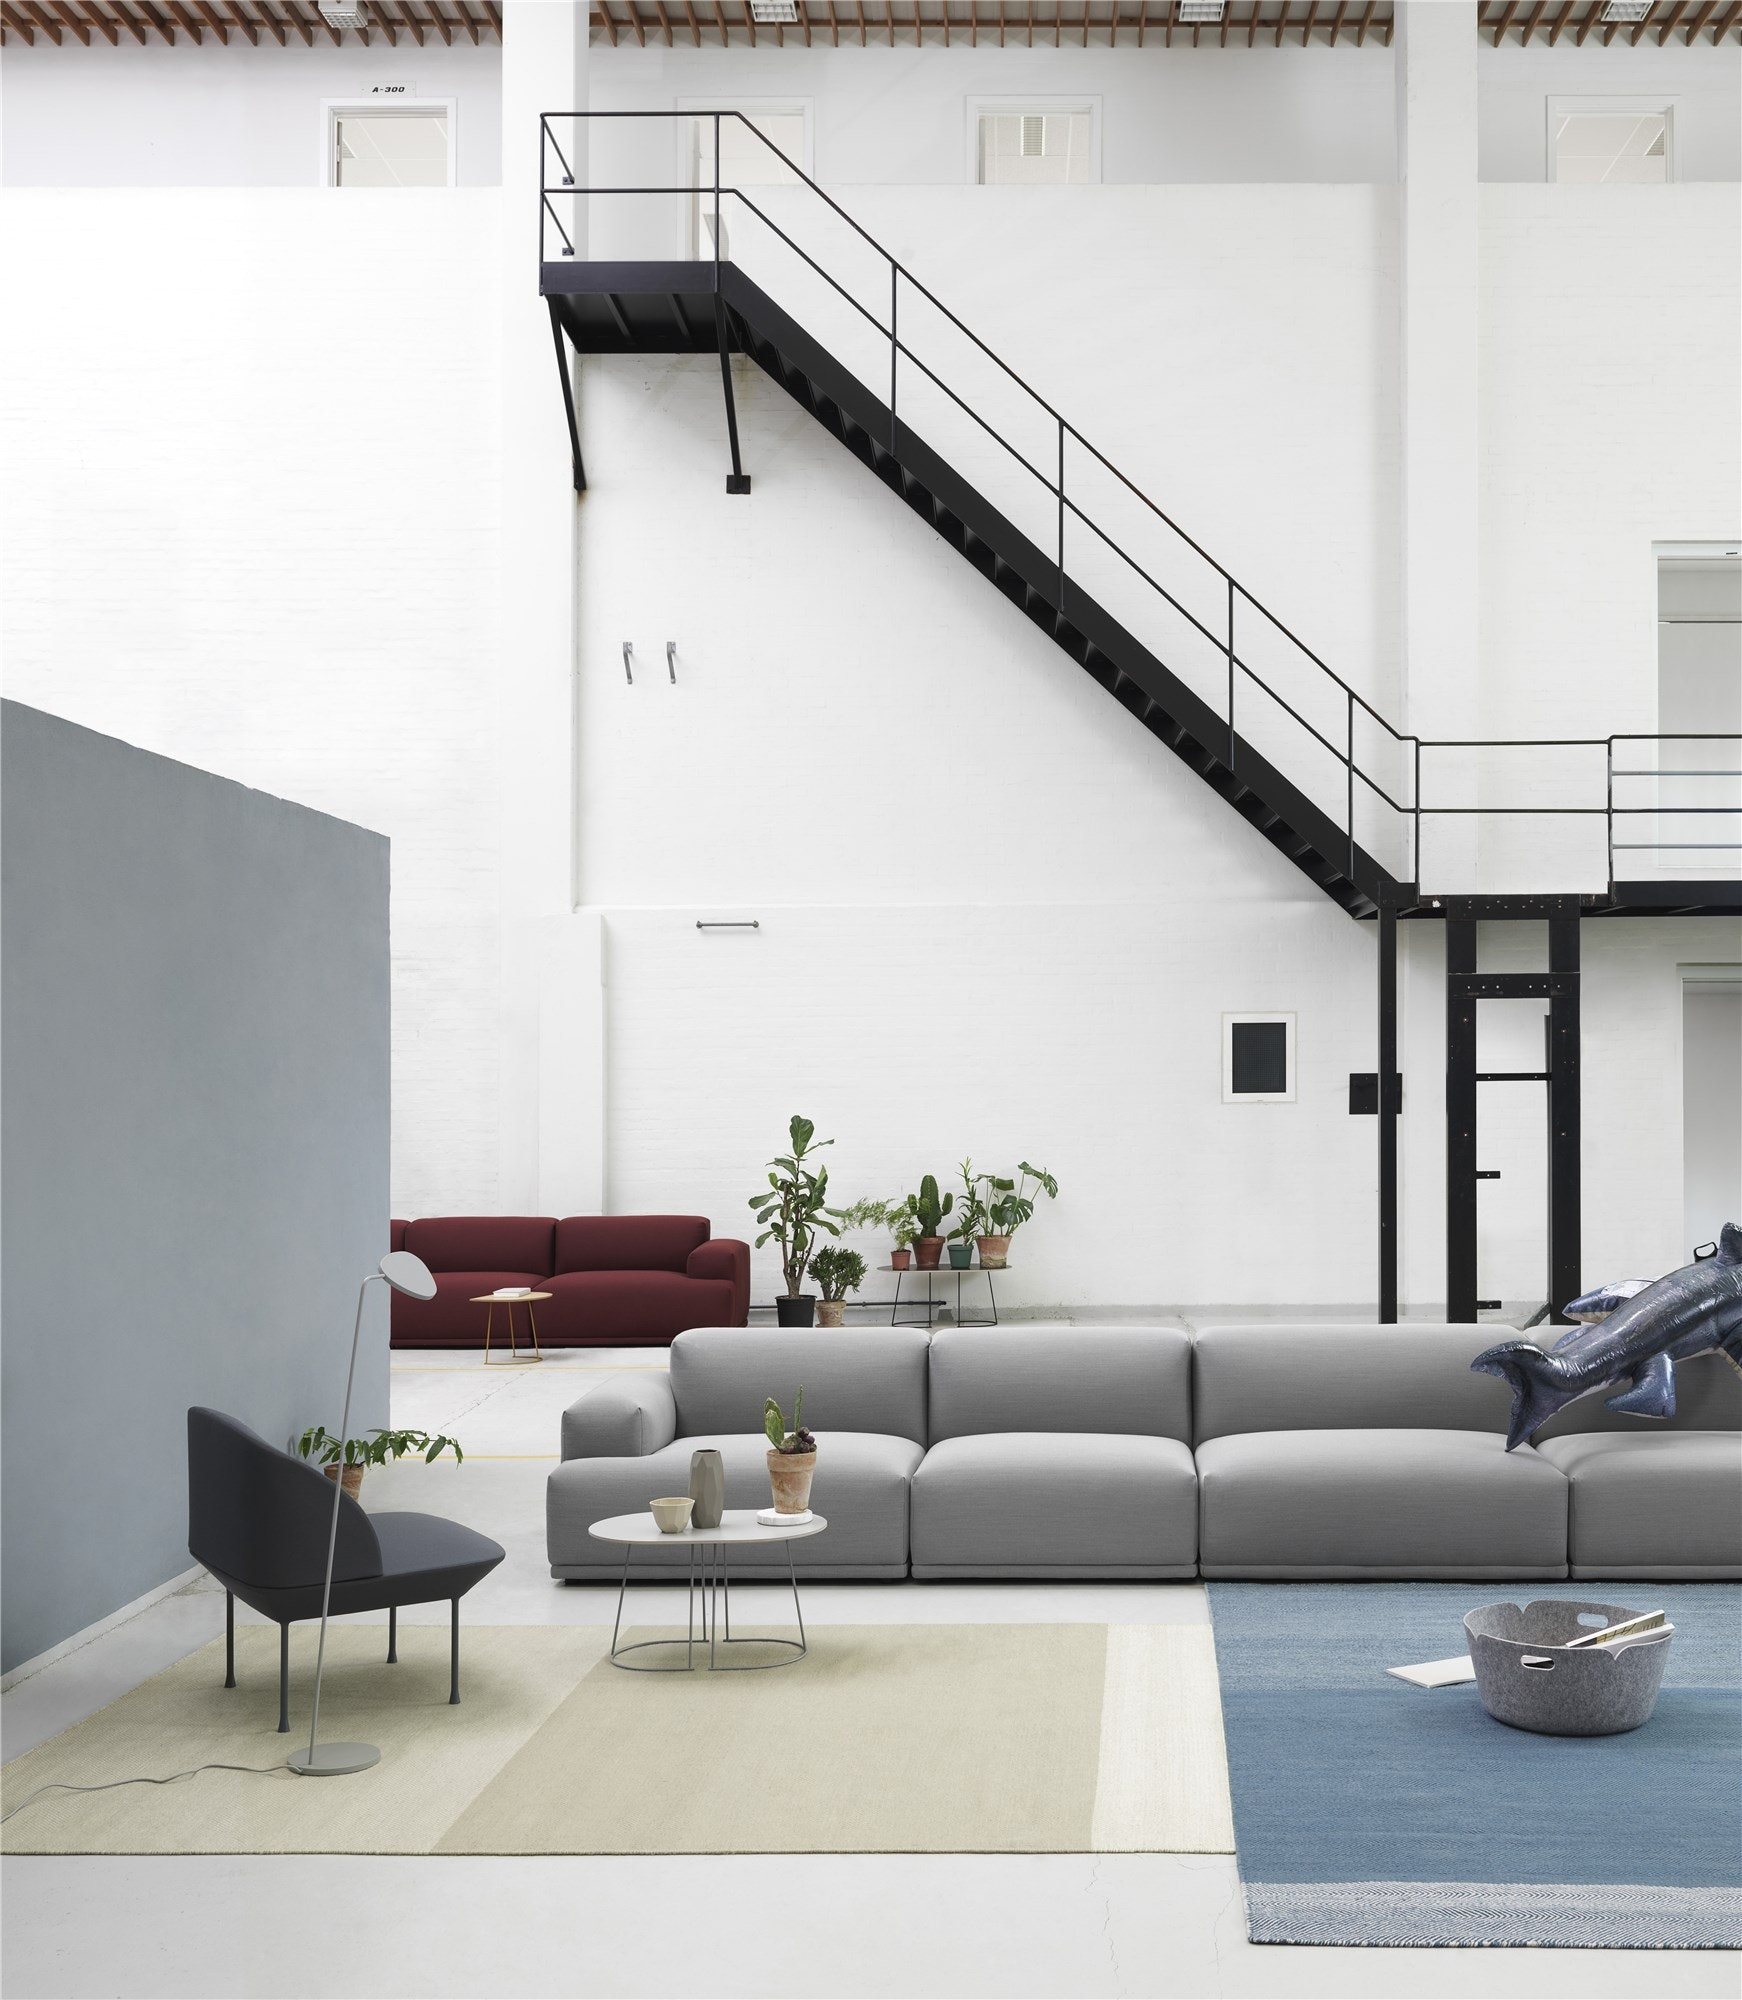 Connect Modular Sofa System | Customise the sofa for your space